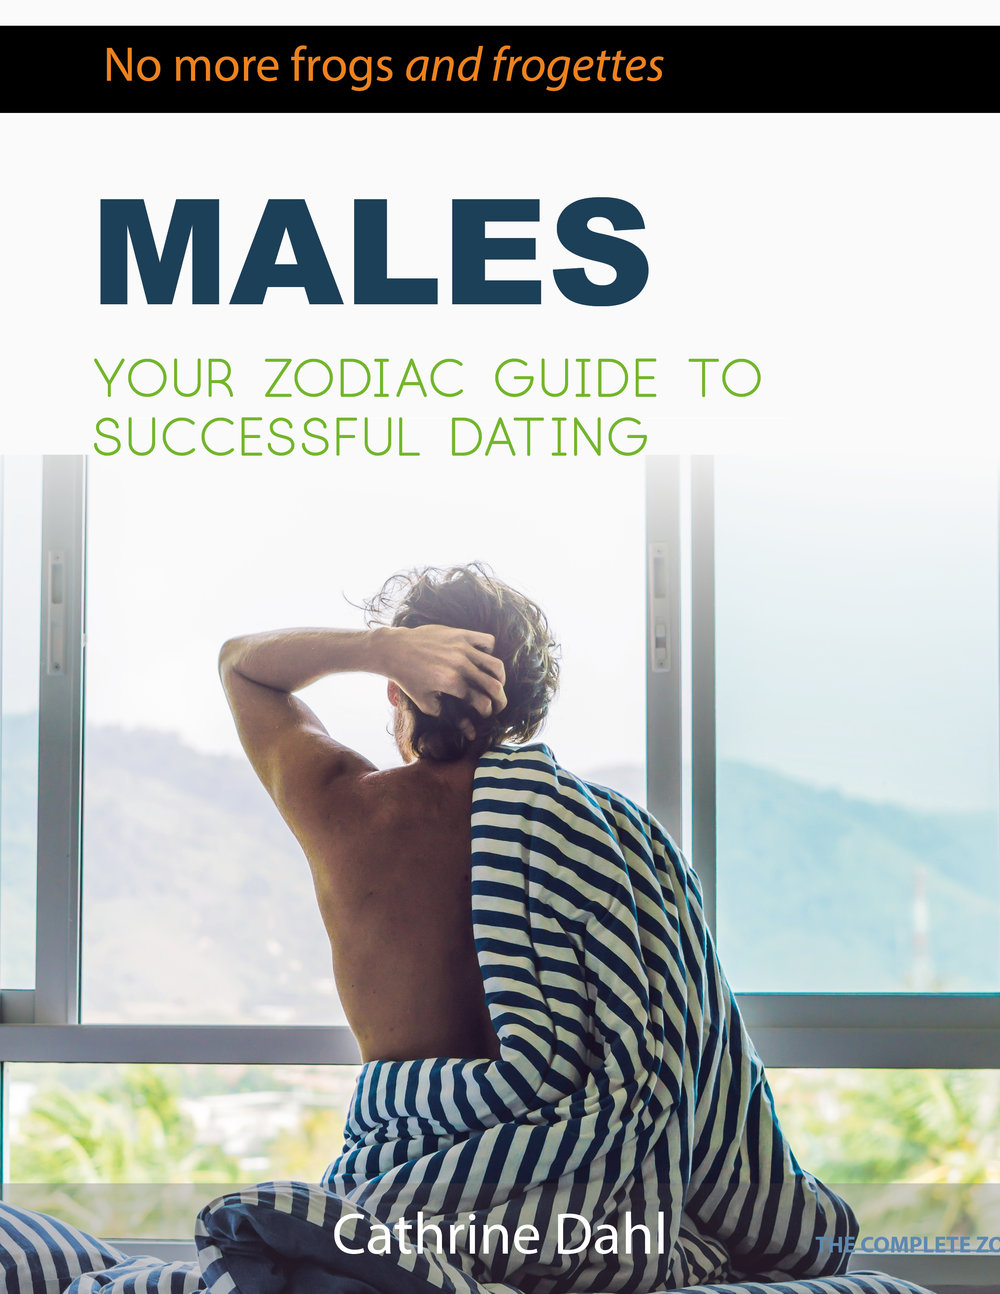 Your  guide to The Males -  Silent and mysterious or outgoing and energitic...? There is much more to the man than what meets the eye.